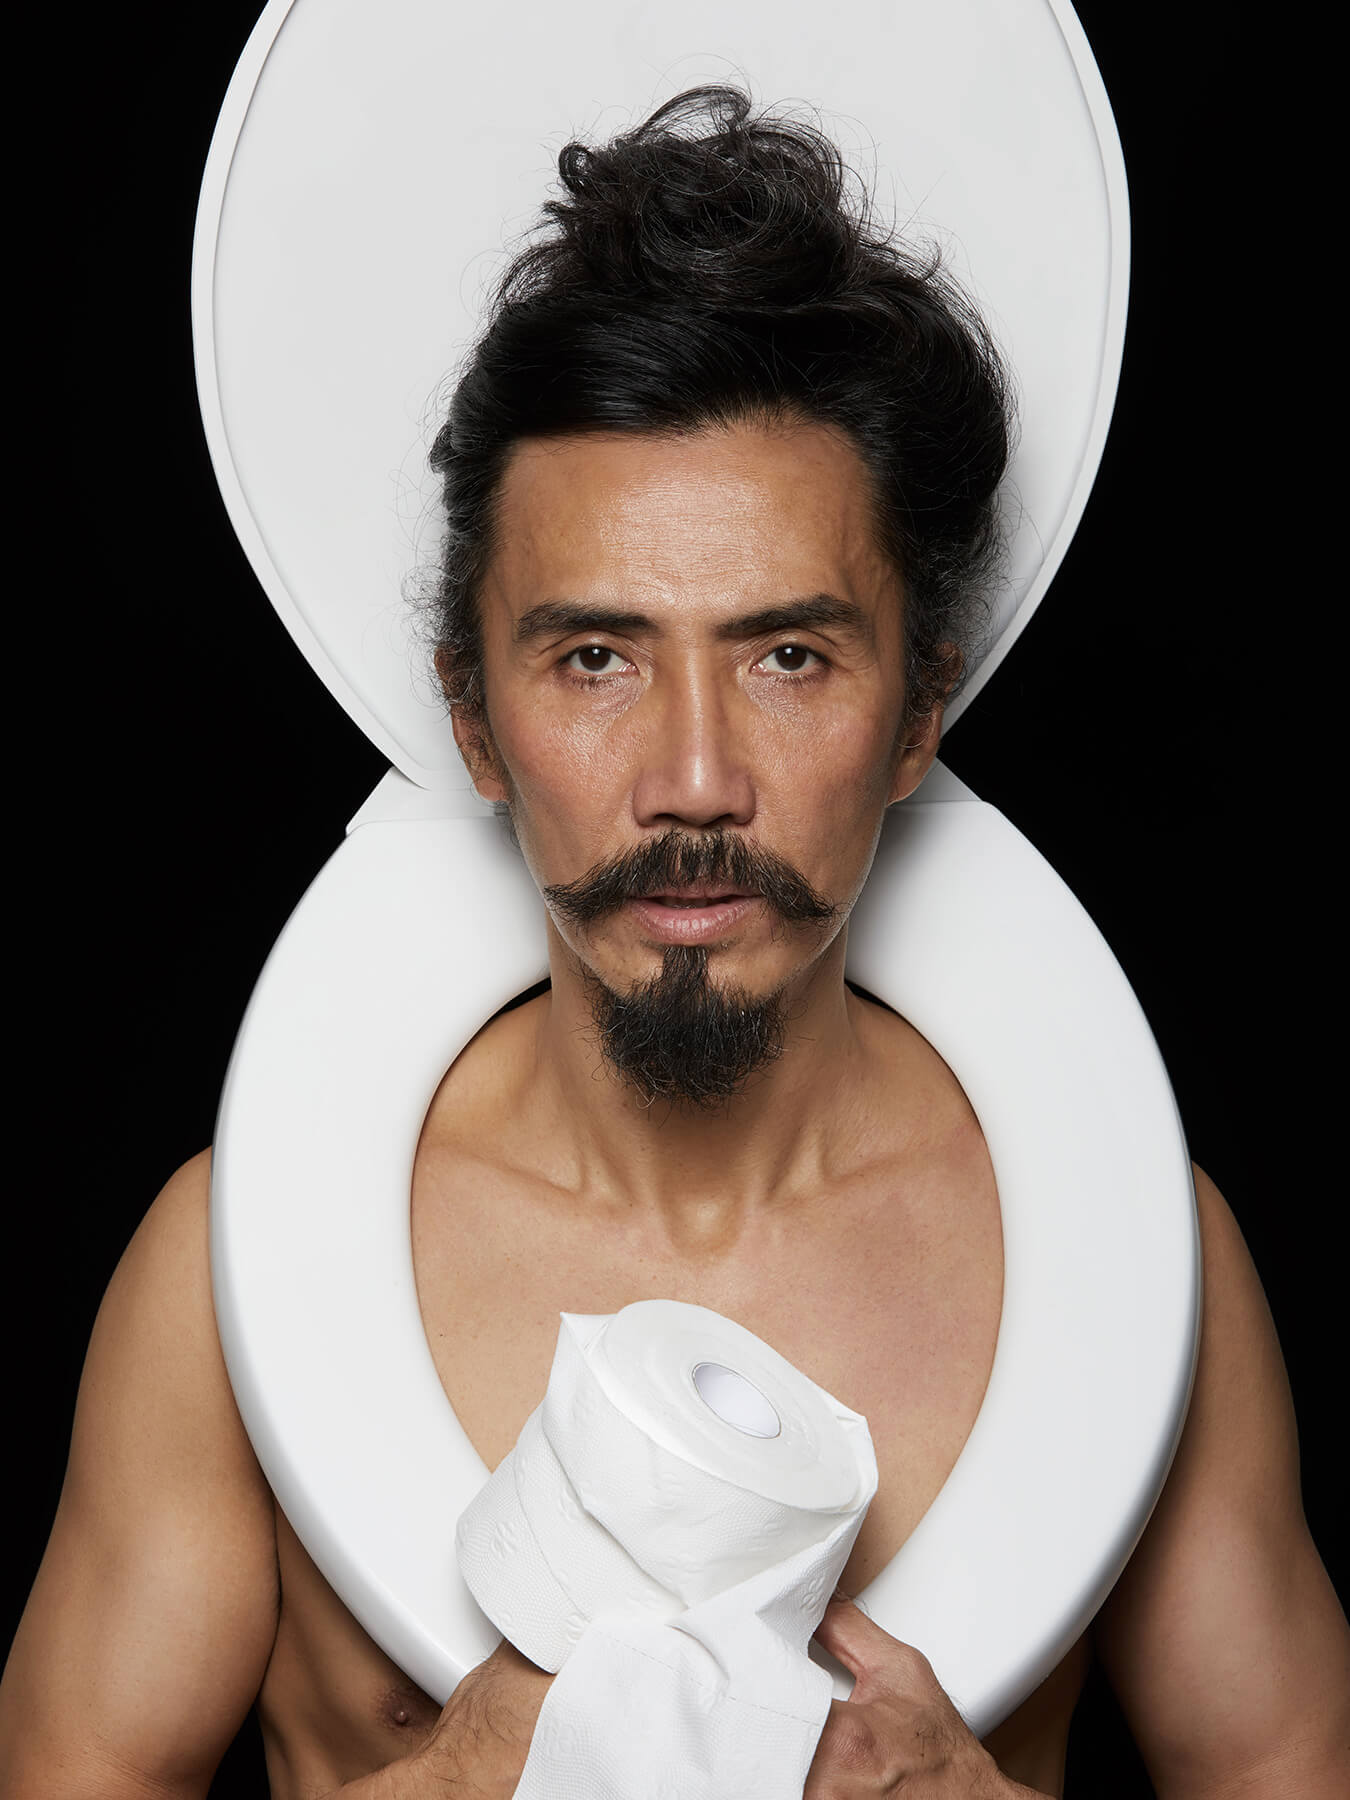 19 Nov 2017 Derong is photographed with a toilet seat over his shoulder